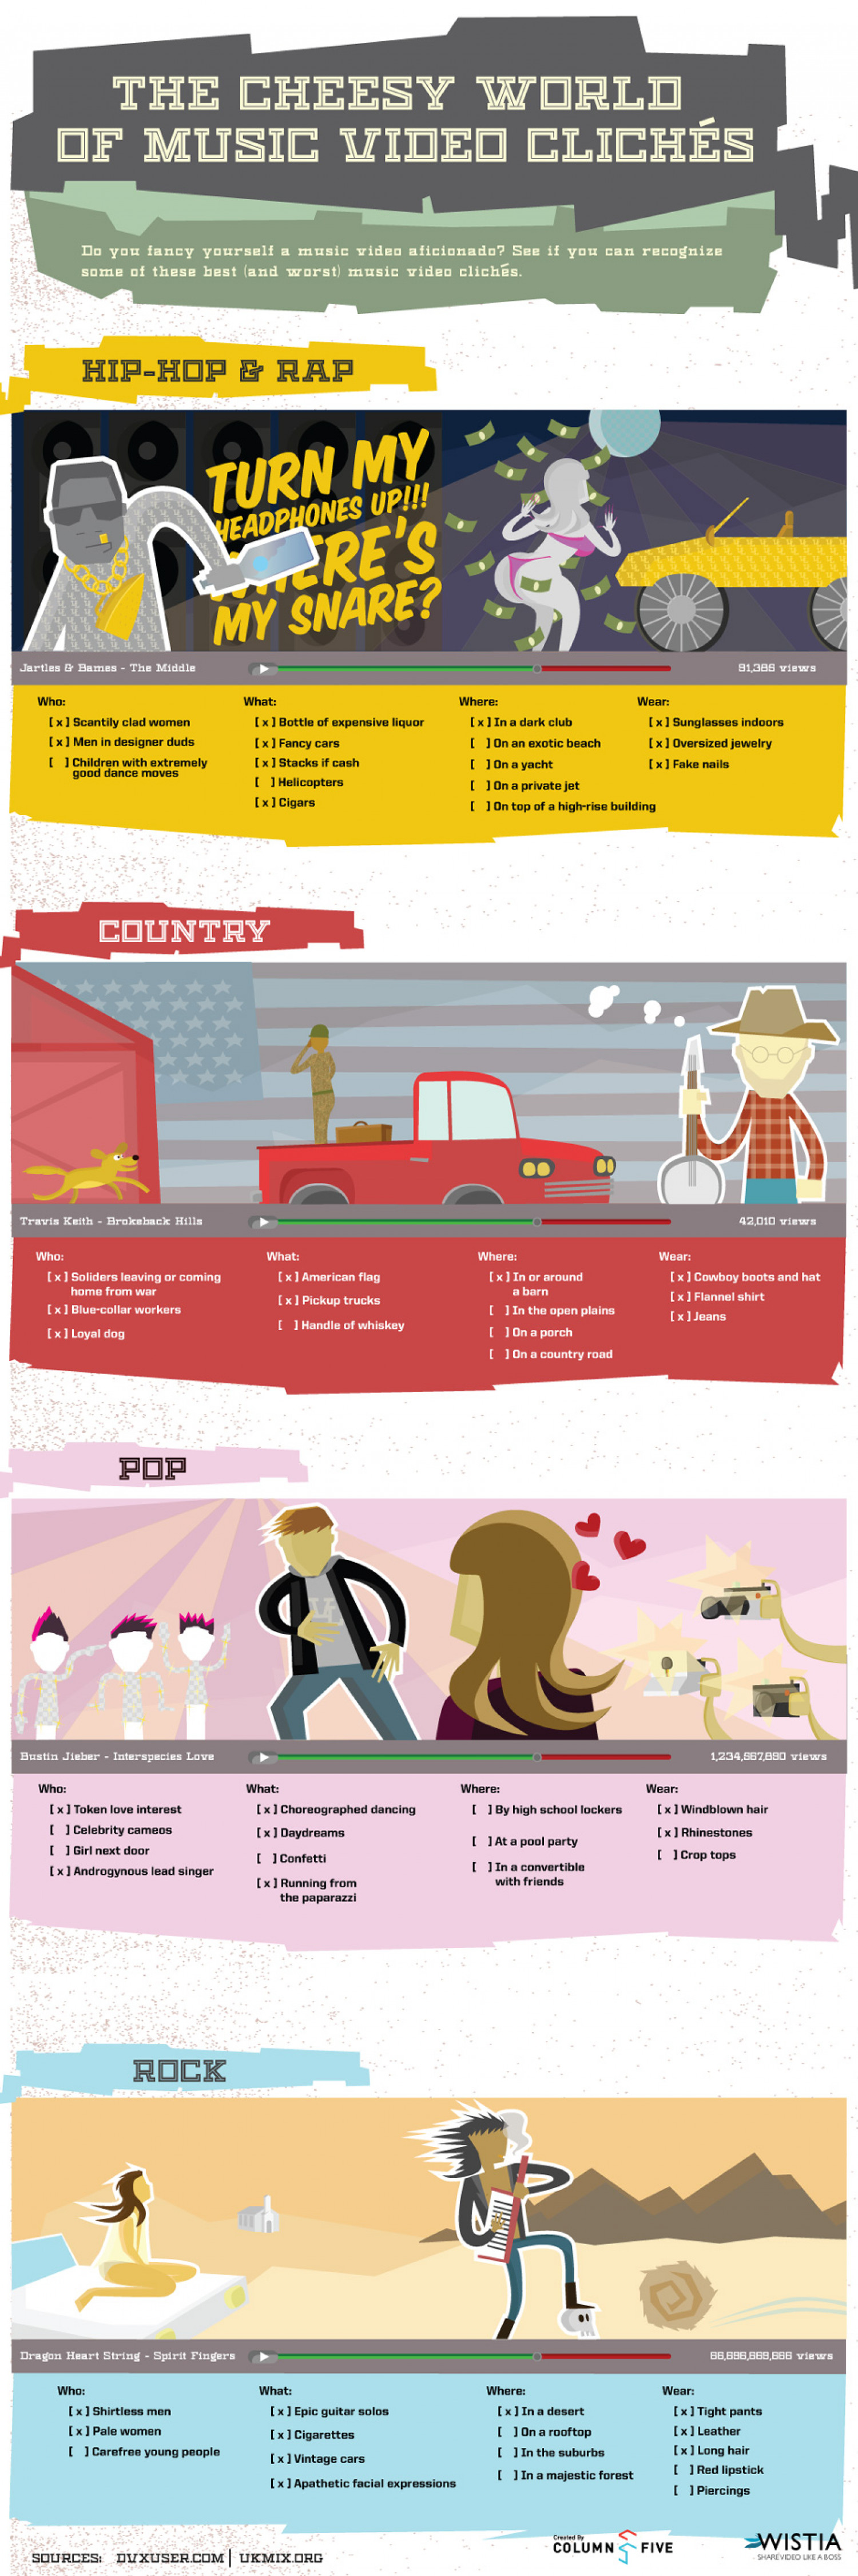 The Cheesy World of Music Videos Infographic